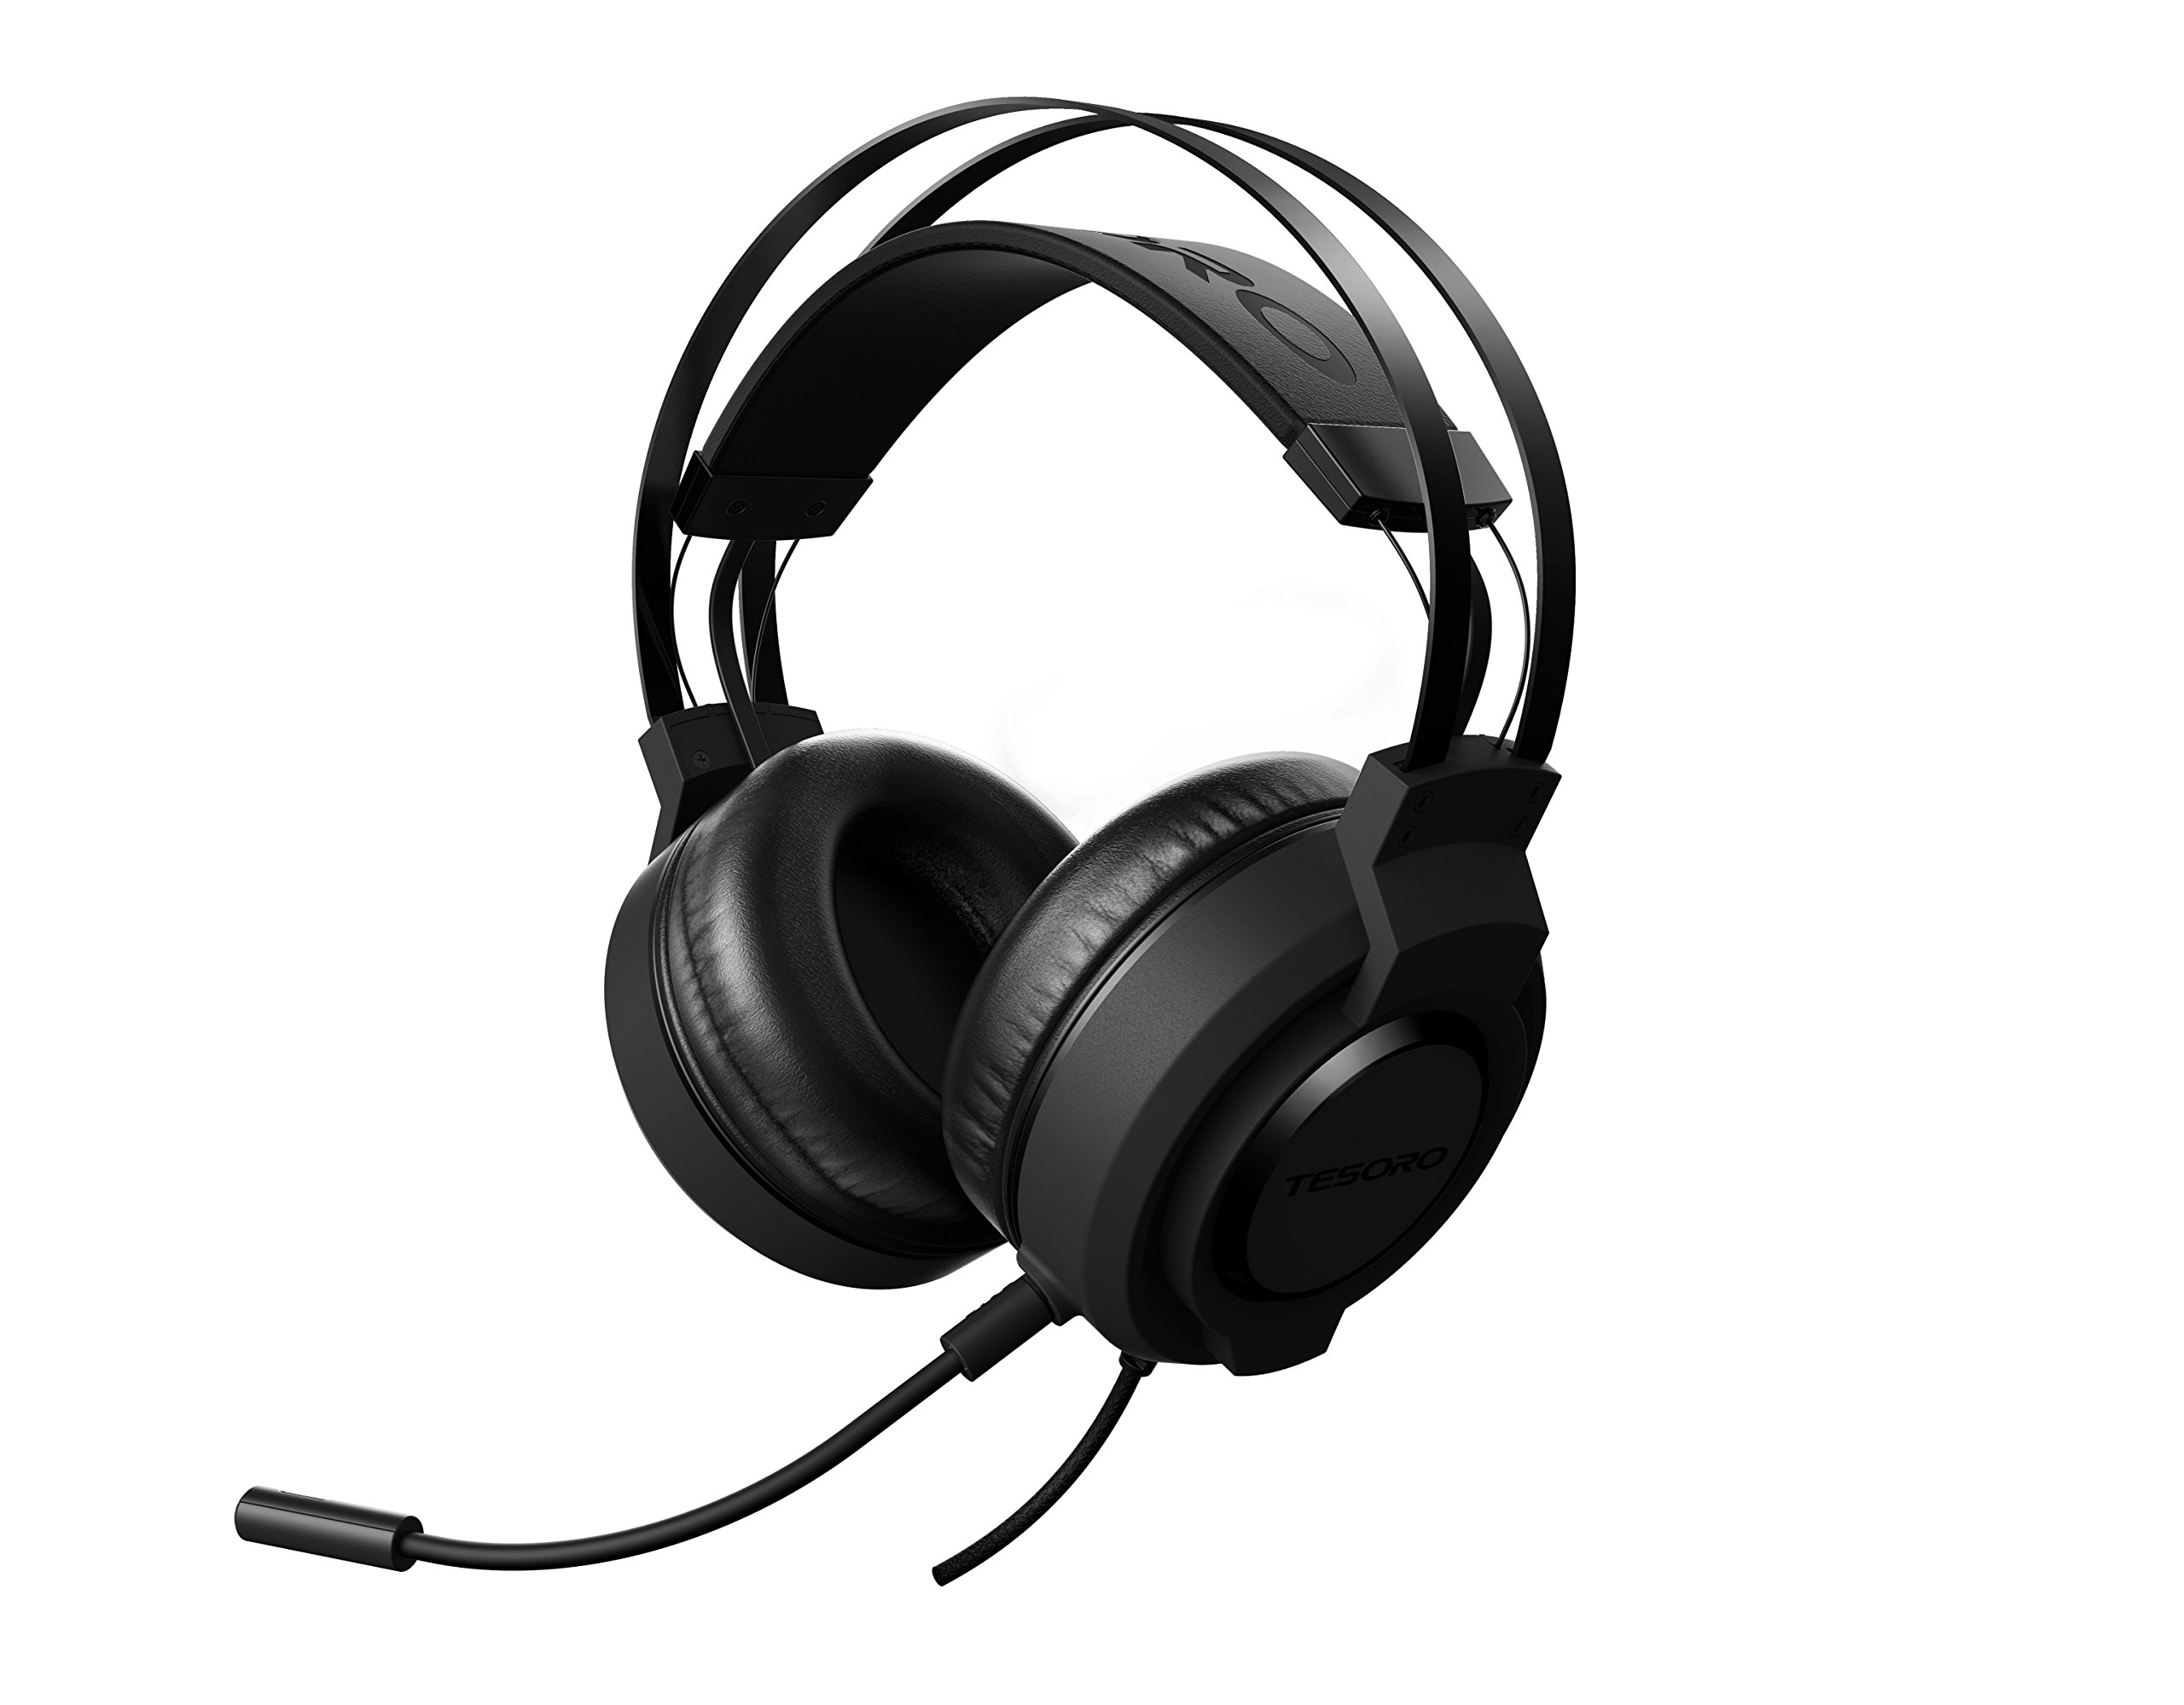 Tesoro Olivant A2 Pro Virtual 7.1 50 mm Noise Cancellation Microphone Gaming Headset (TS-A2-USB)